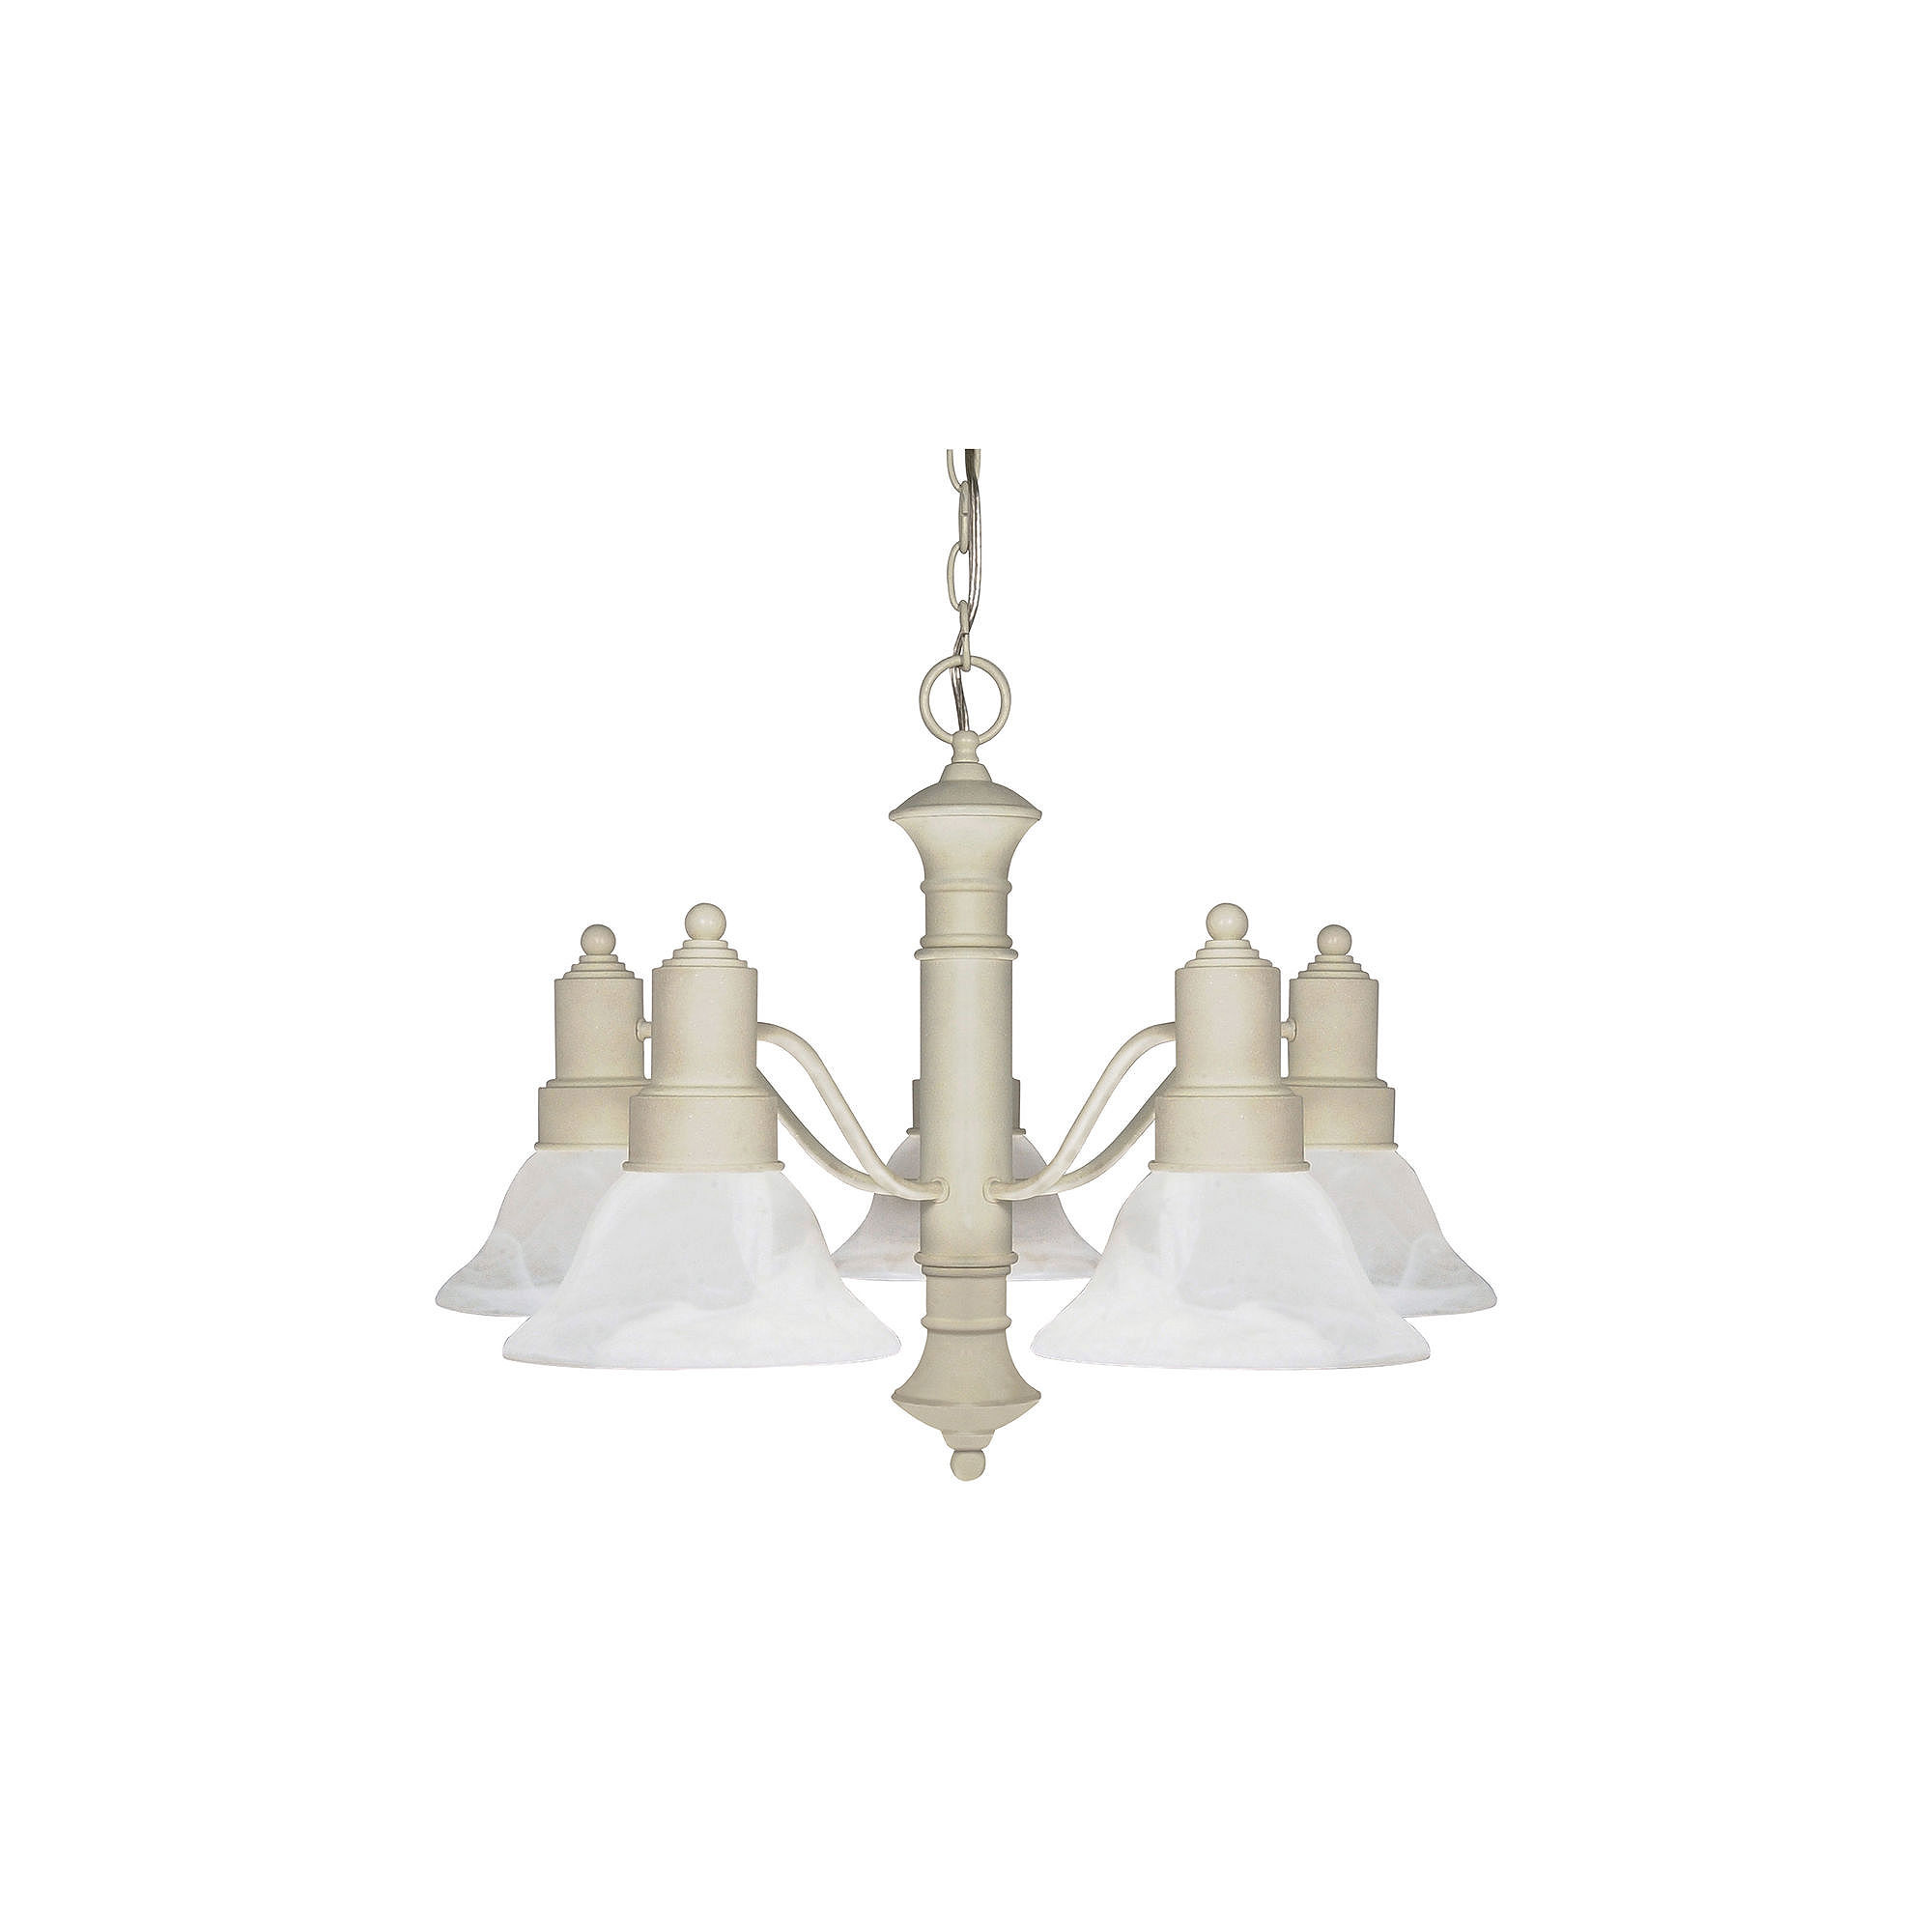 Filament Design 5-Light Textured White Chandelier